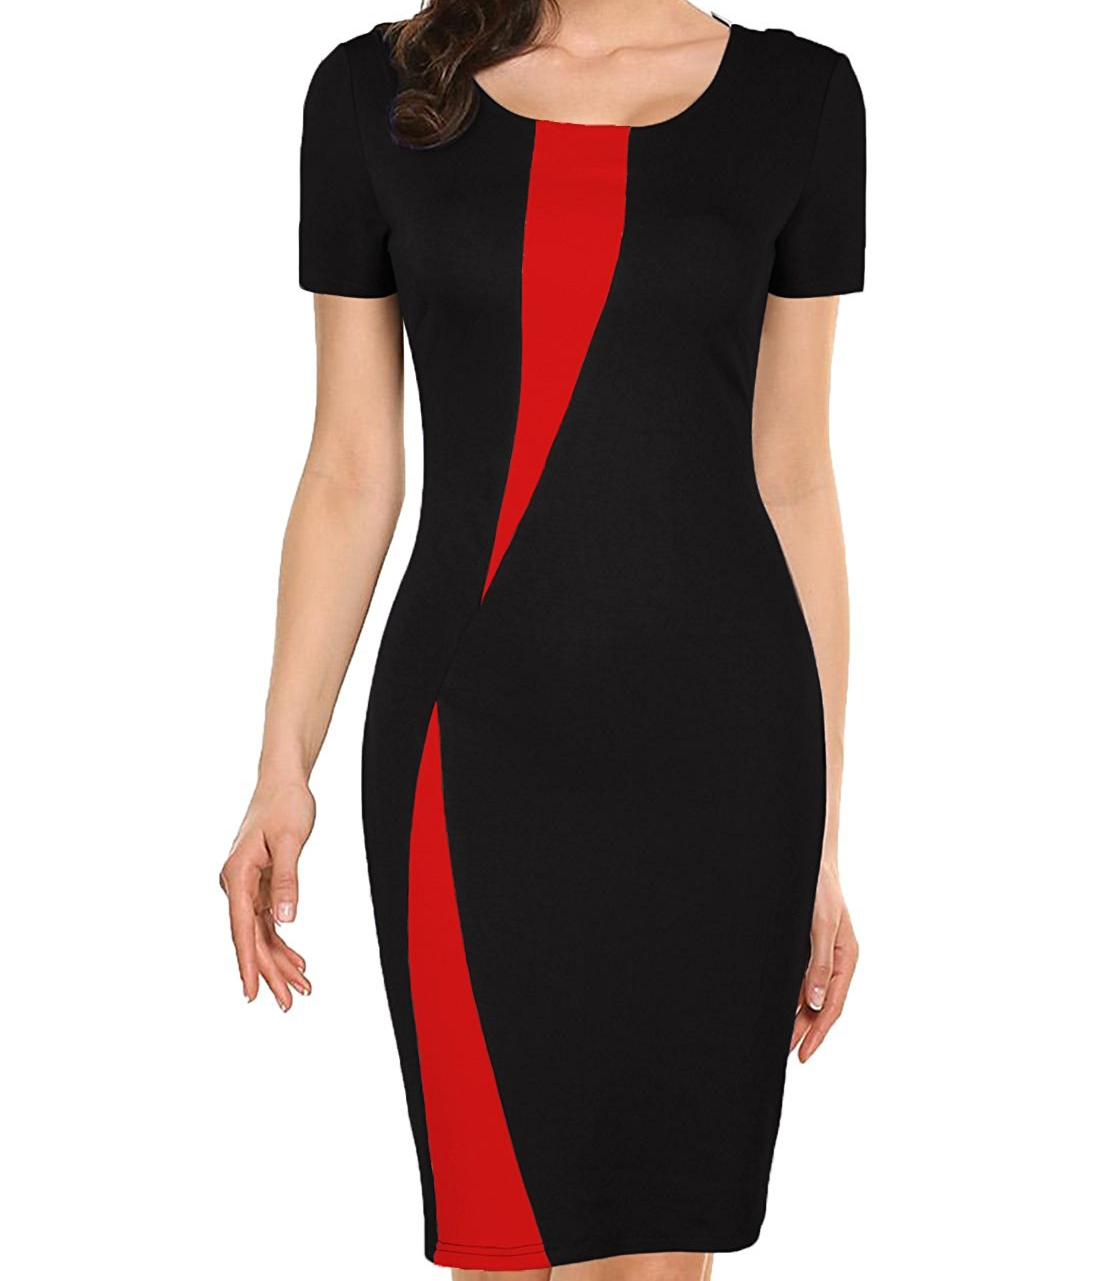 Latest Vintage Dot Wear To Work Office Casual Sleeveless Knee Length Women Pencil Dress